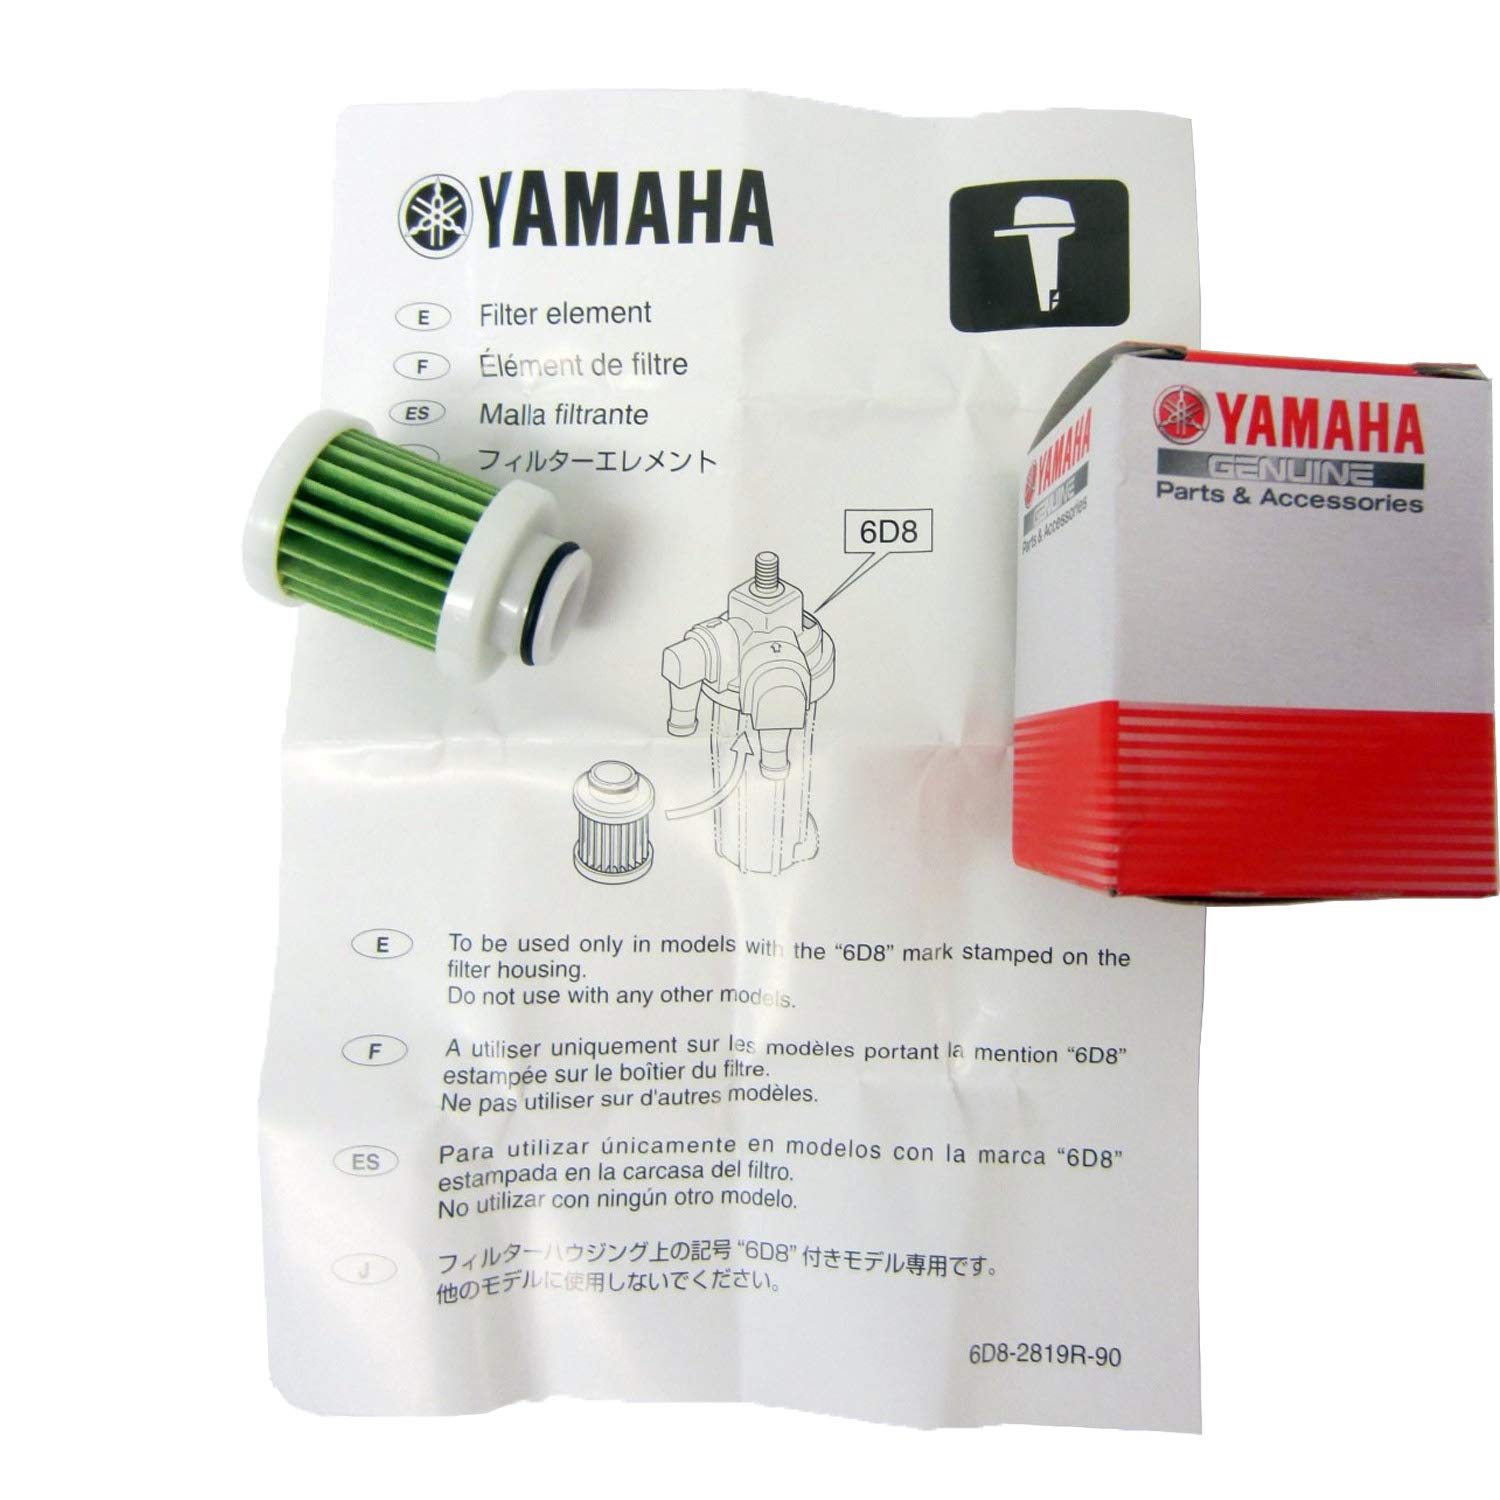 Yamaha Oem Outboard Primary Fuel Filter Element 6d8 2010 F150 Locaton On Ws24a 00 Automotive